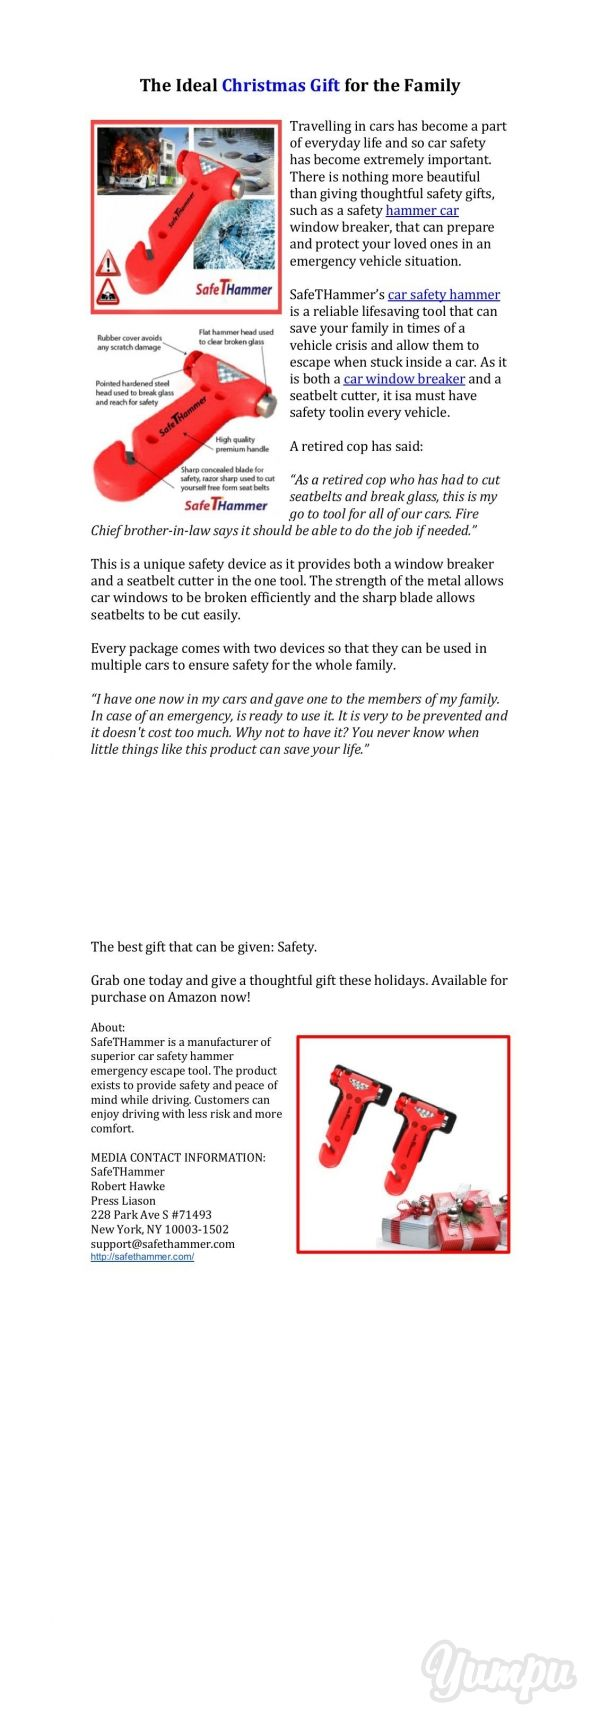 The Ideal Christmas Gift for the Family - Magazine with 2 pages: SafeTHammer is a manufacturer of superior car safety hammer emergency escape tool. The product exists to provide safety and peace of mind while driving. Customers can enjoy driving with less risk and more comfort.